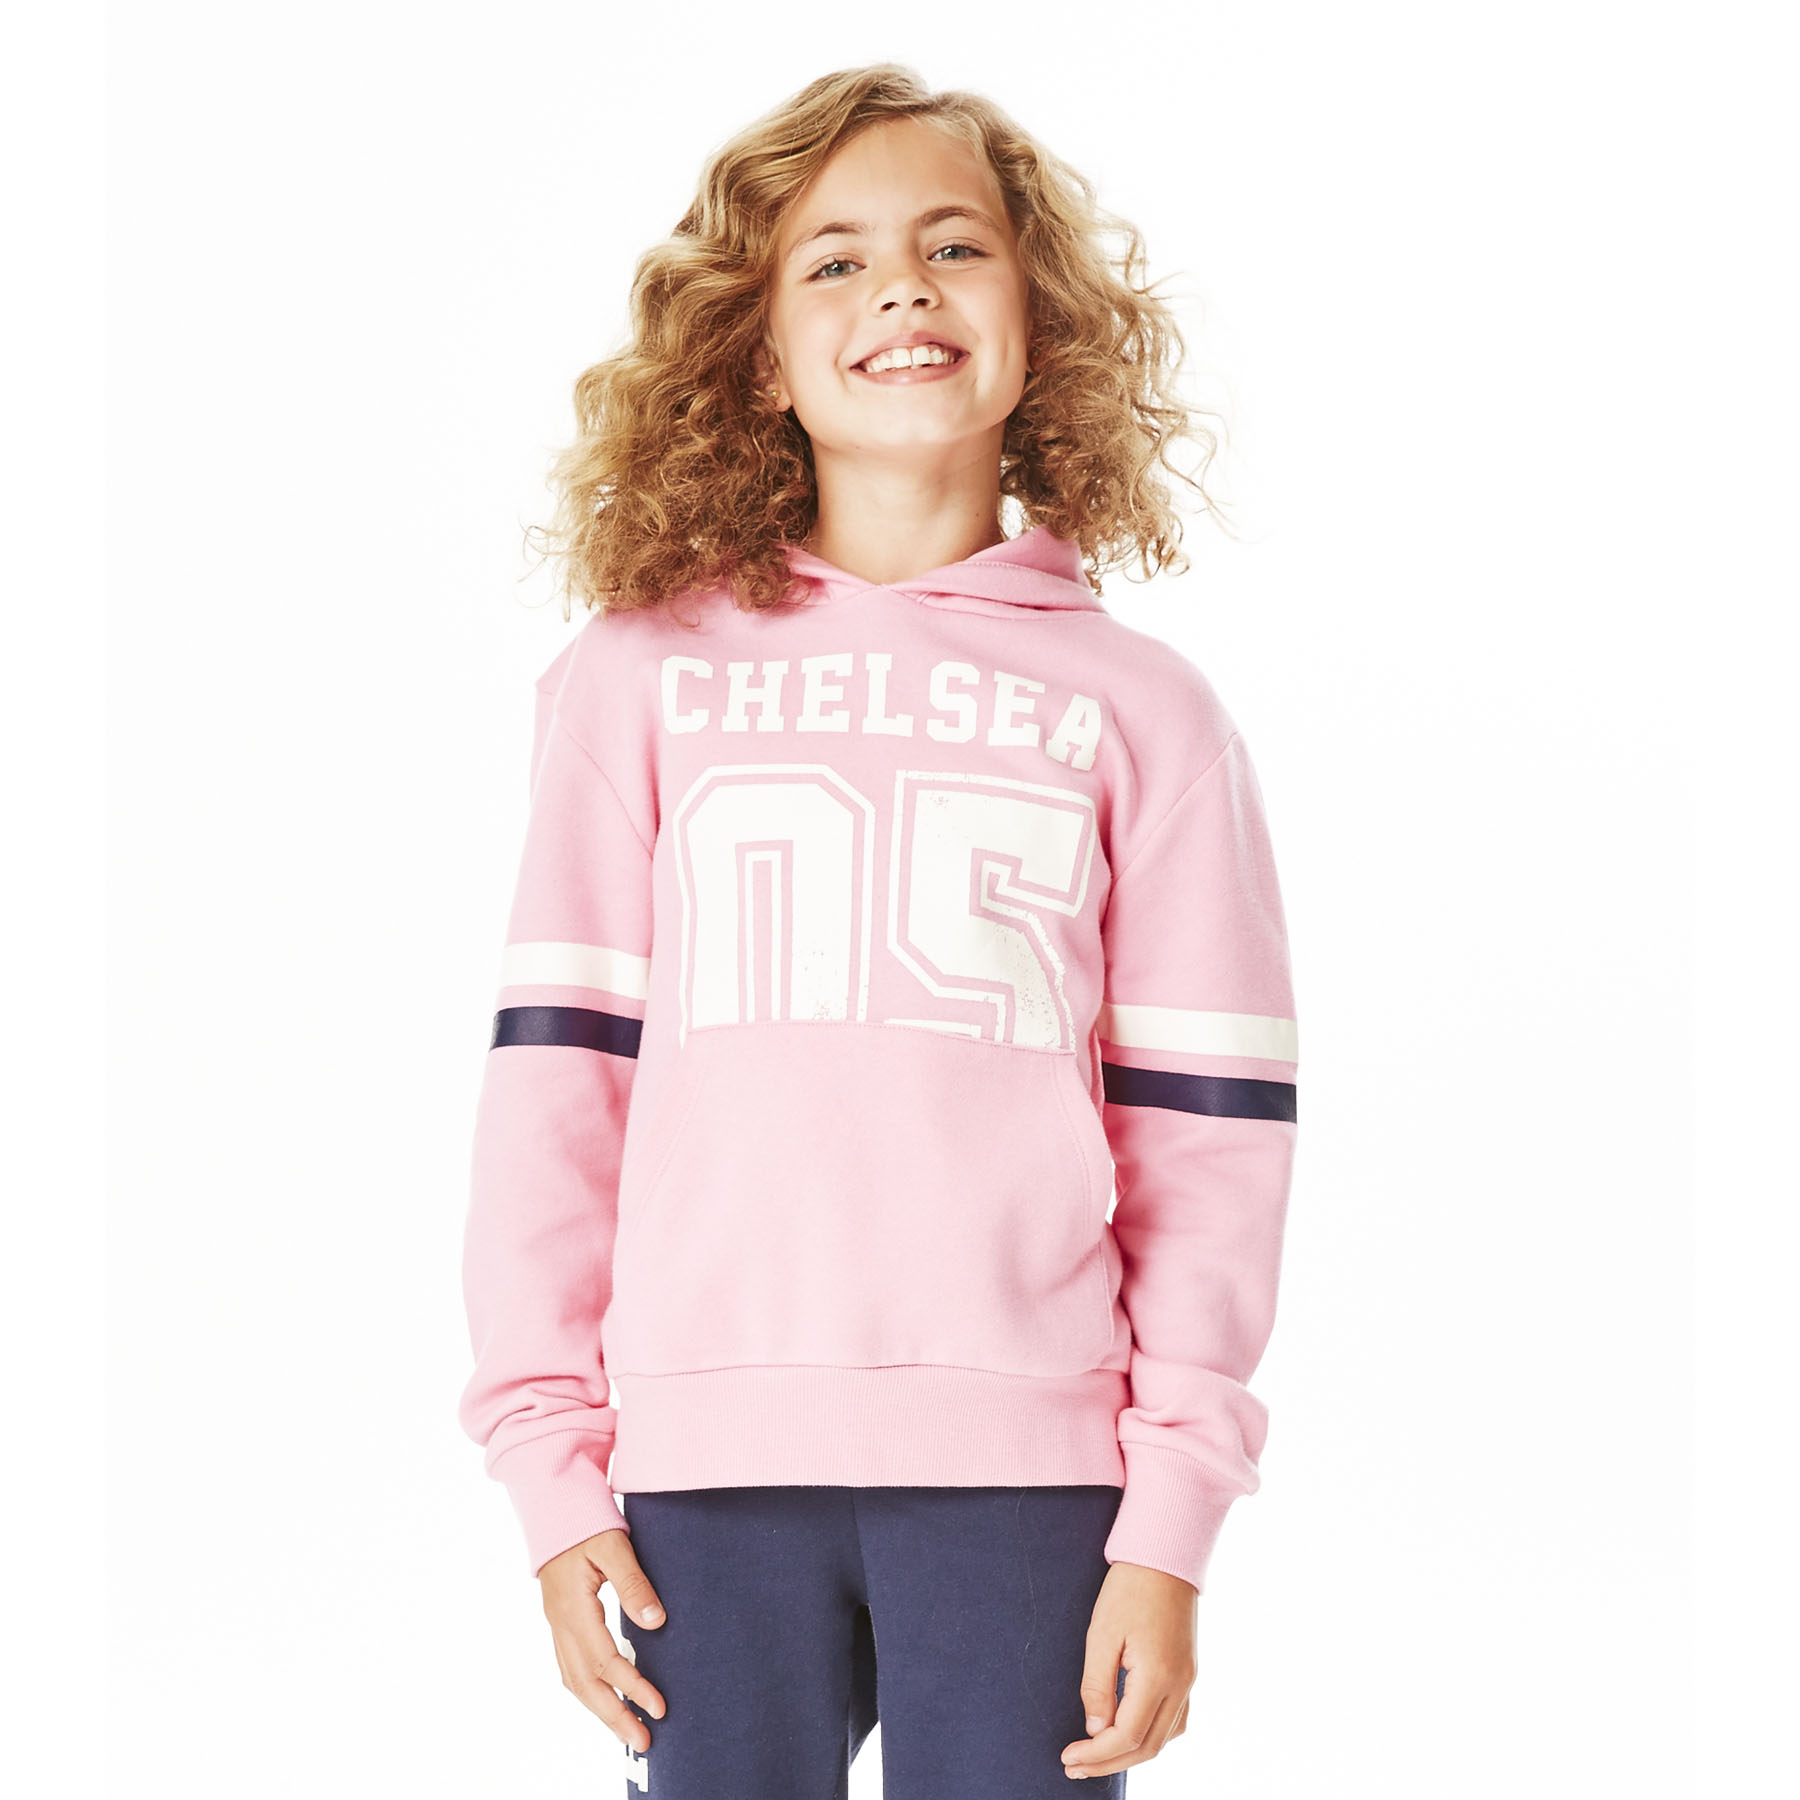 Chelsea Distressed Hoodie - Sachet Pink - Girls